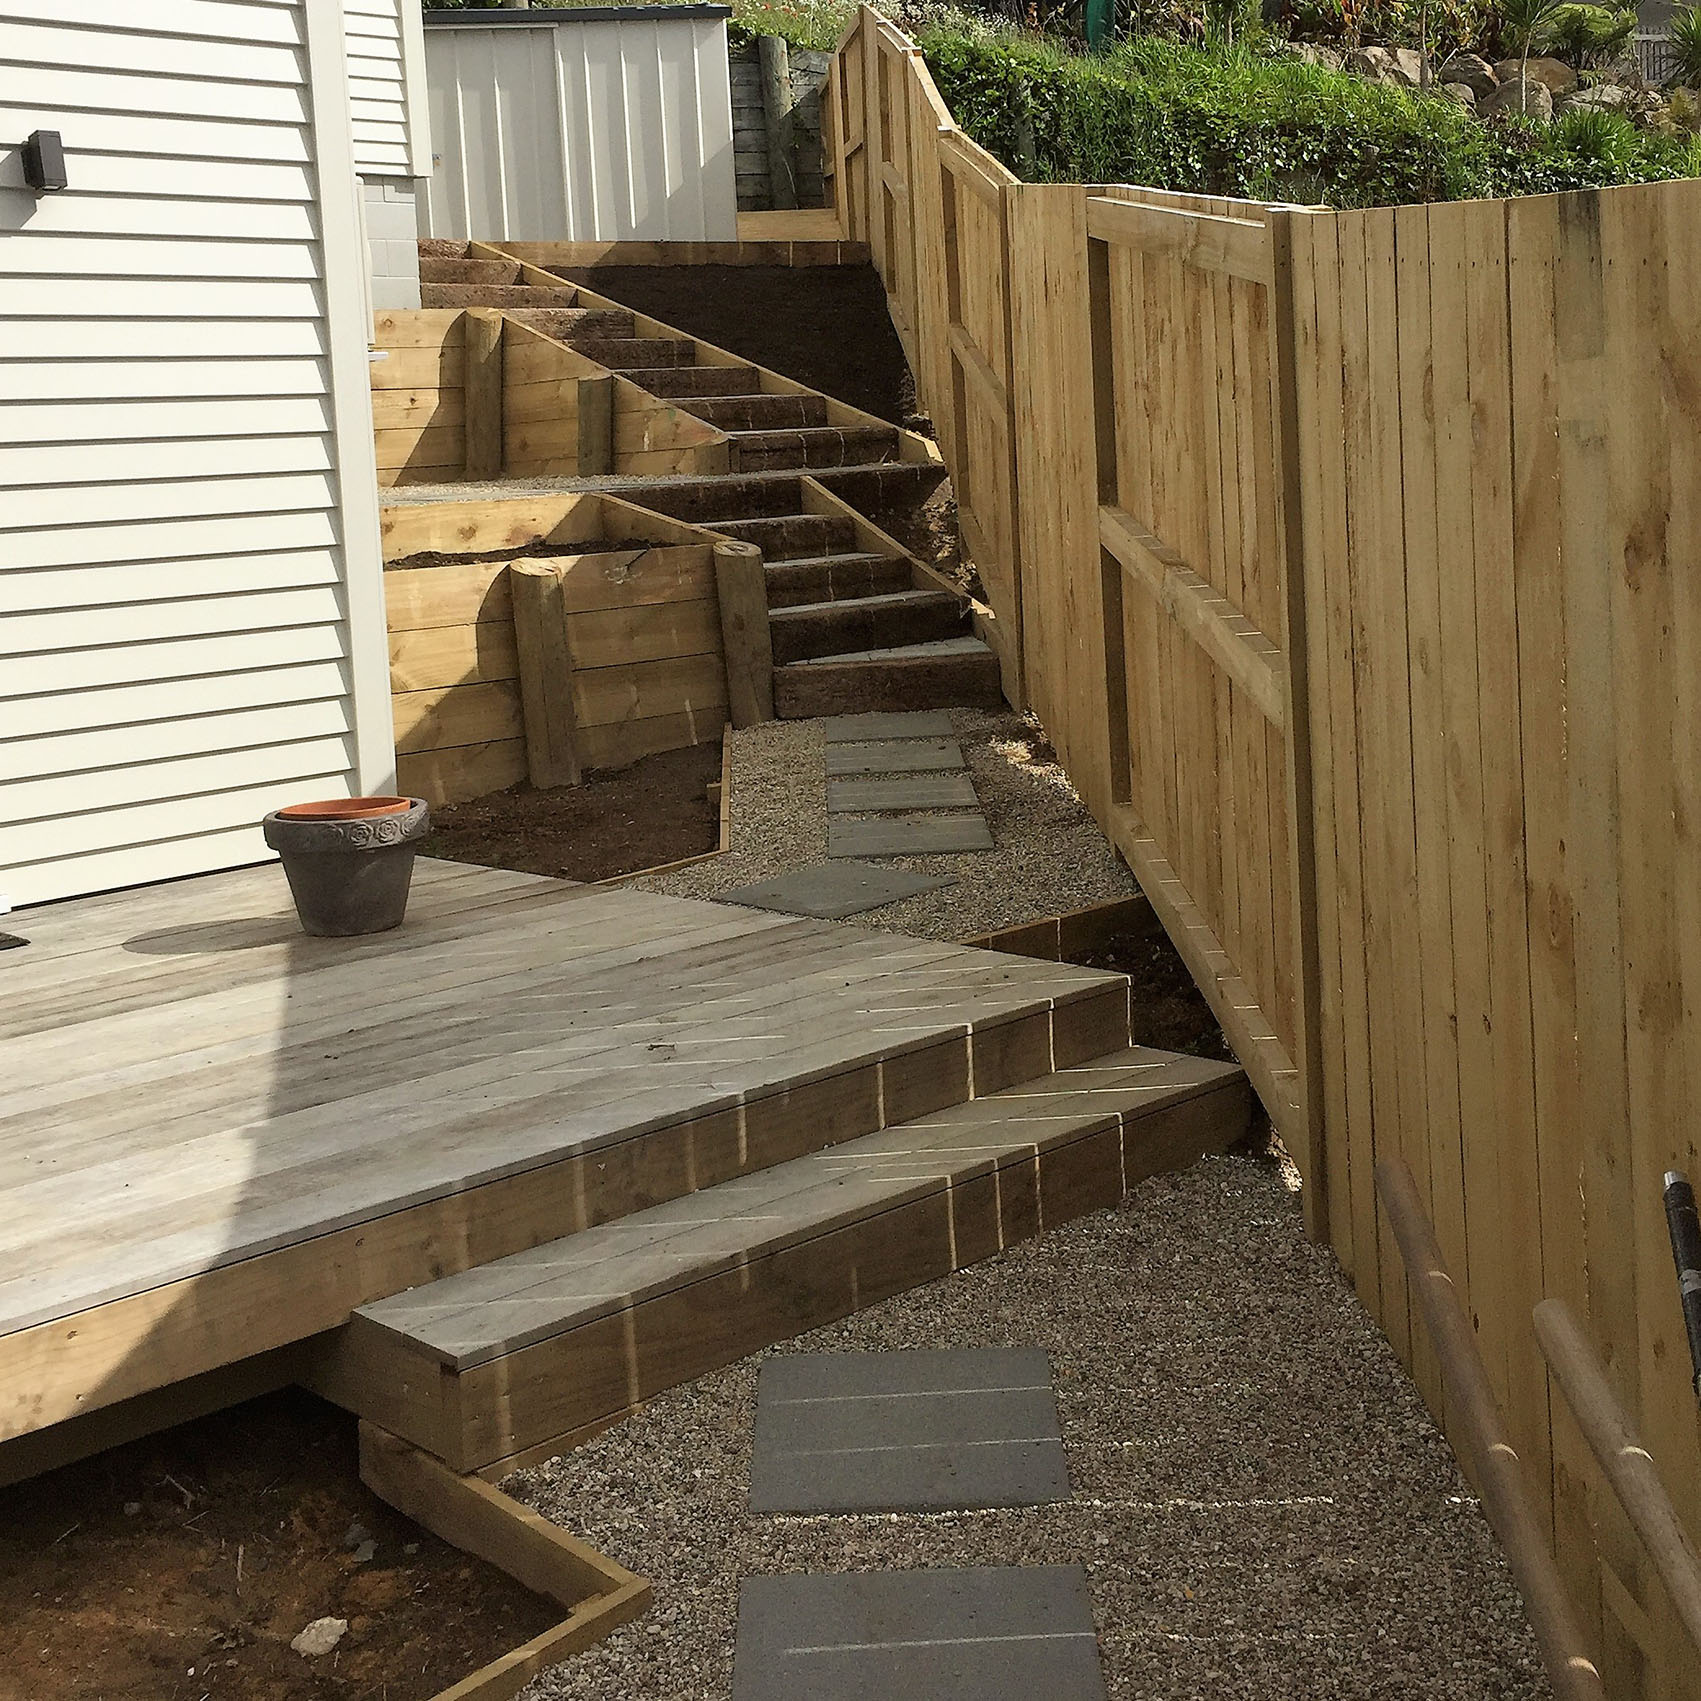 Decking and Stair Construction